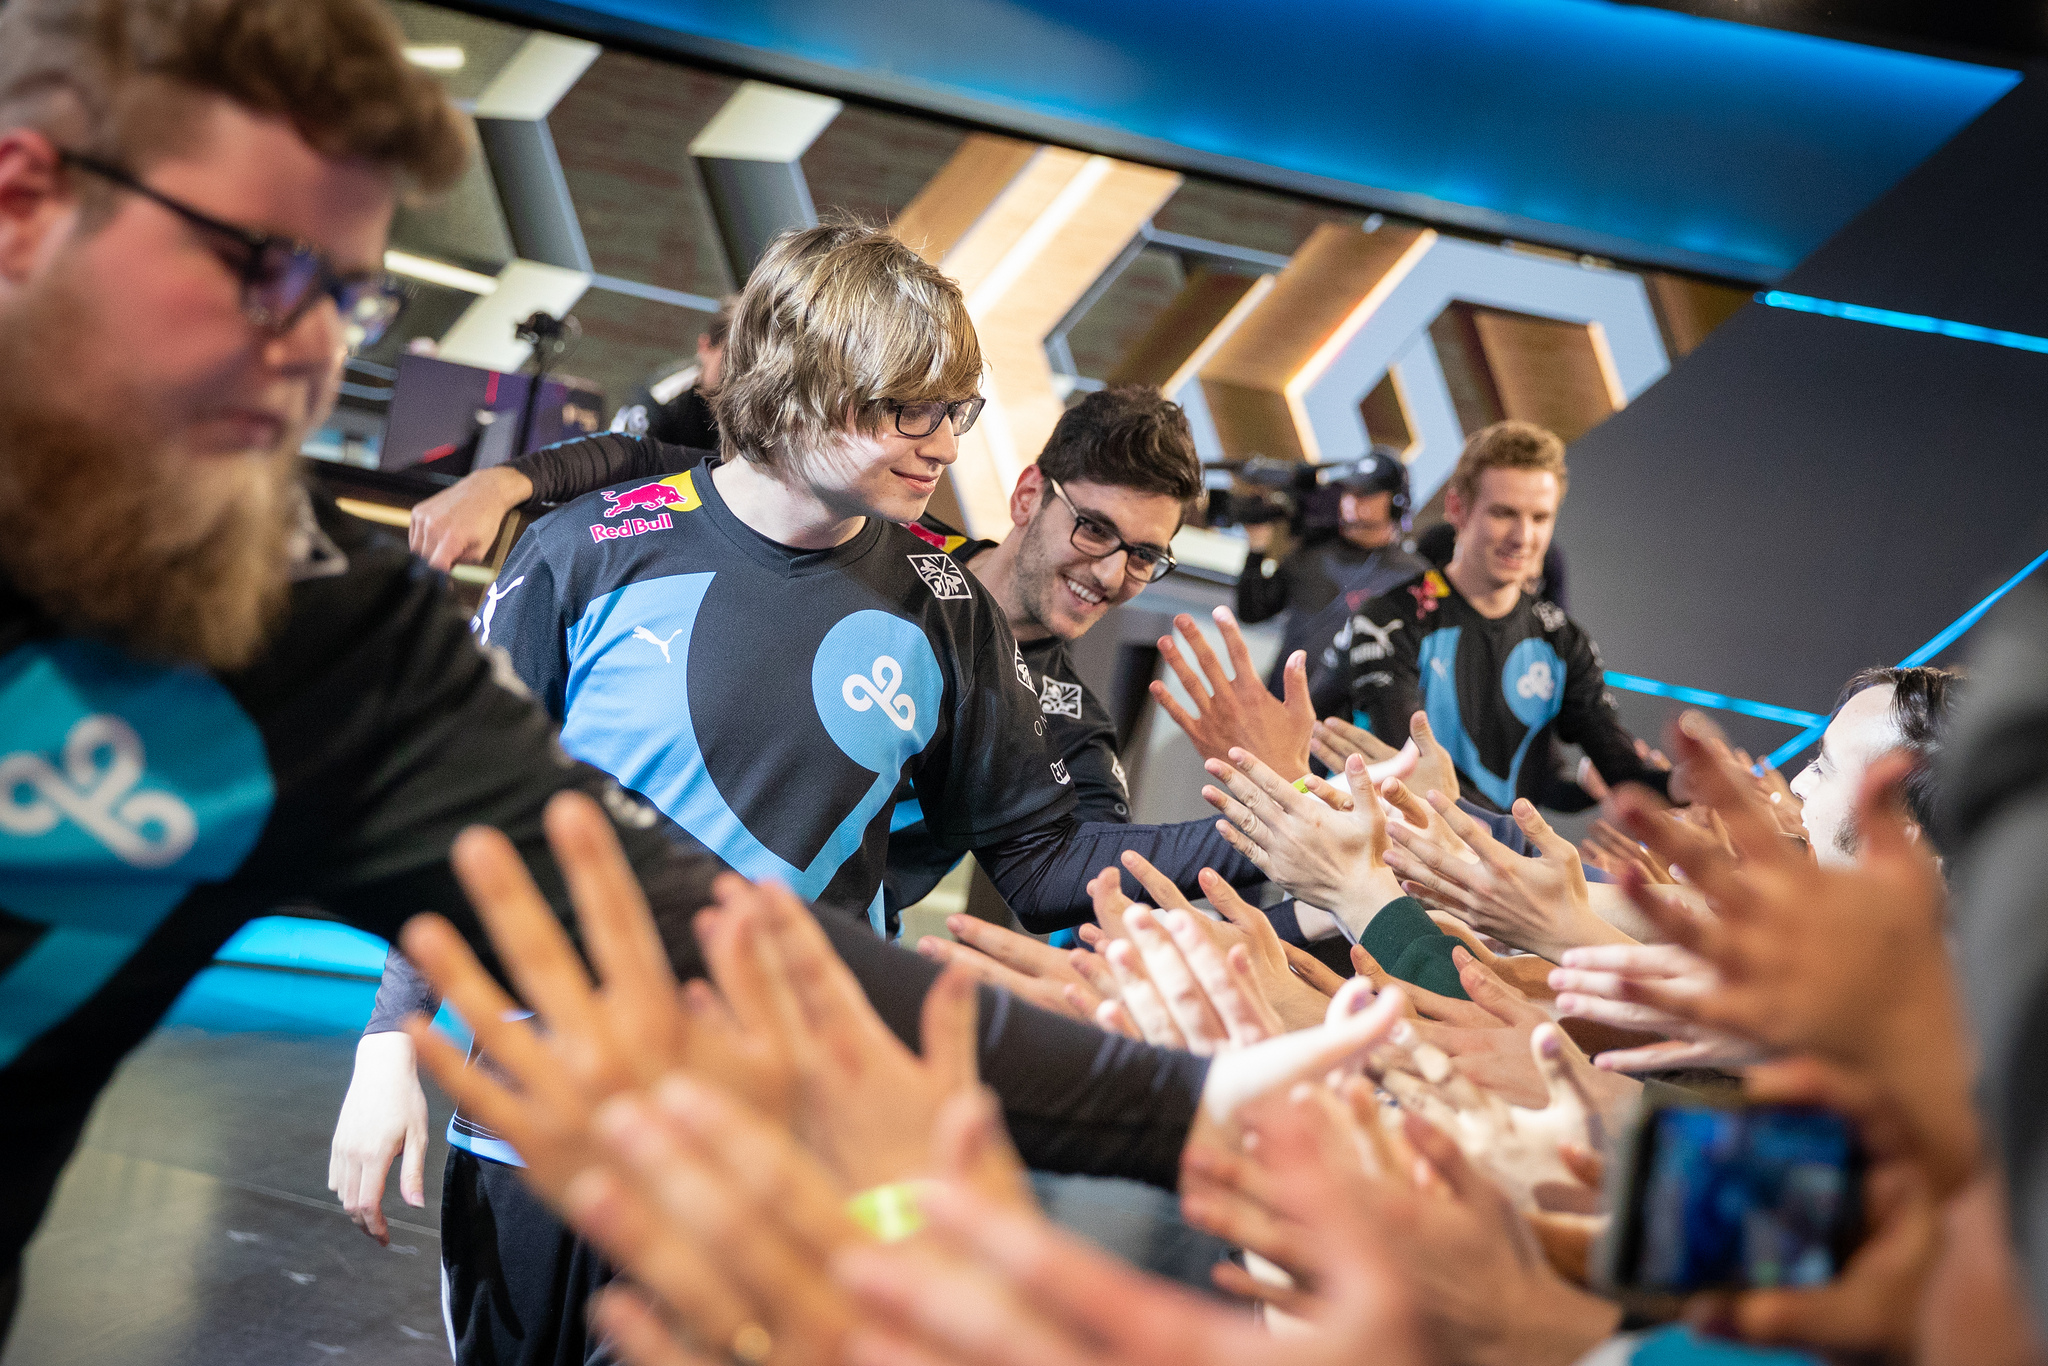 Cloud 9 have been the most consistent team through the LCS Spring Split.